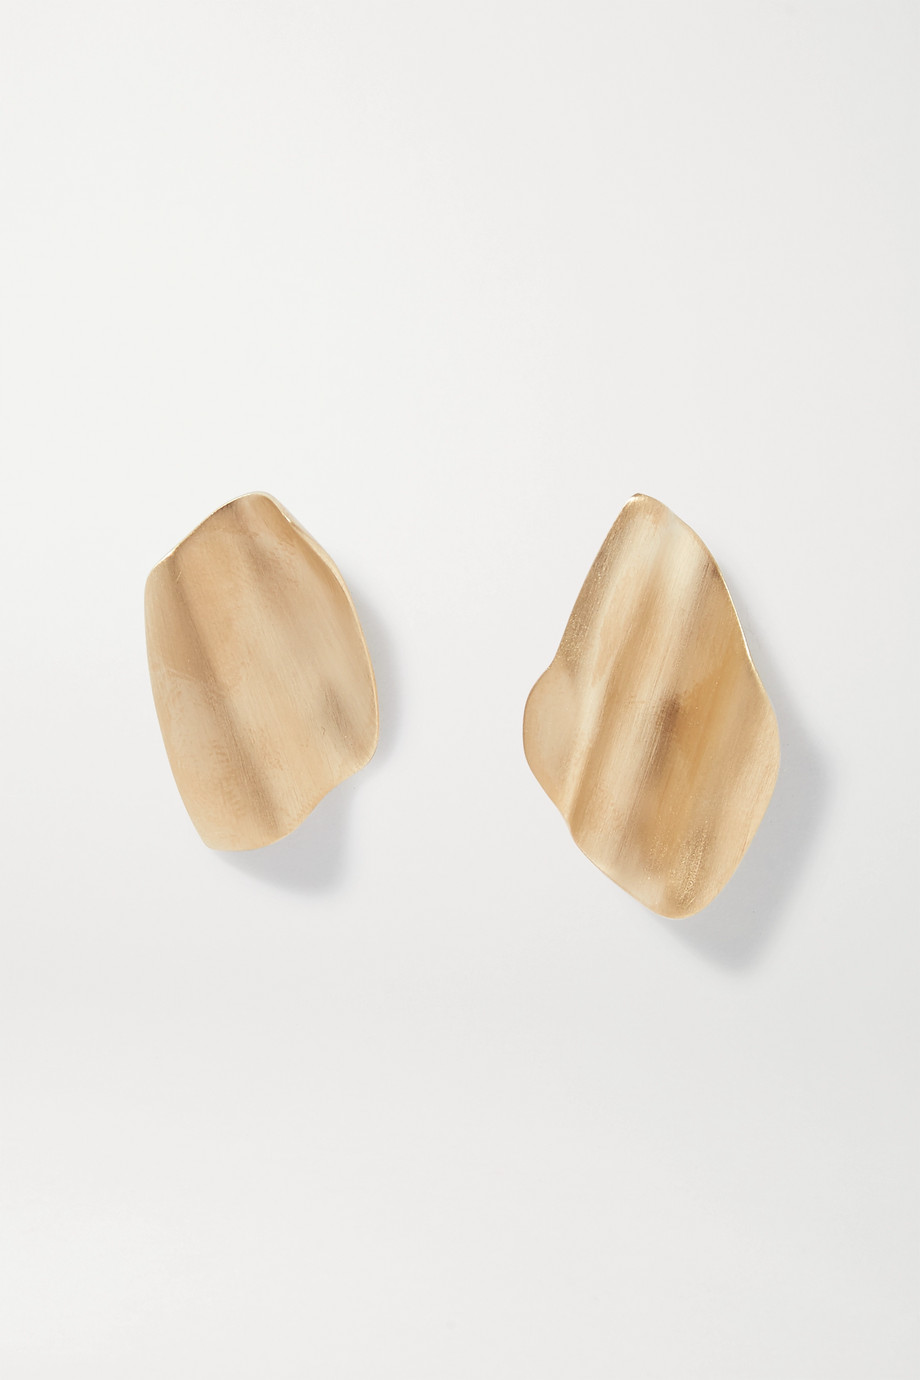 Completedworks Gold vermeil earrings